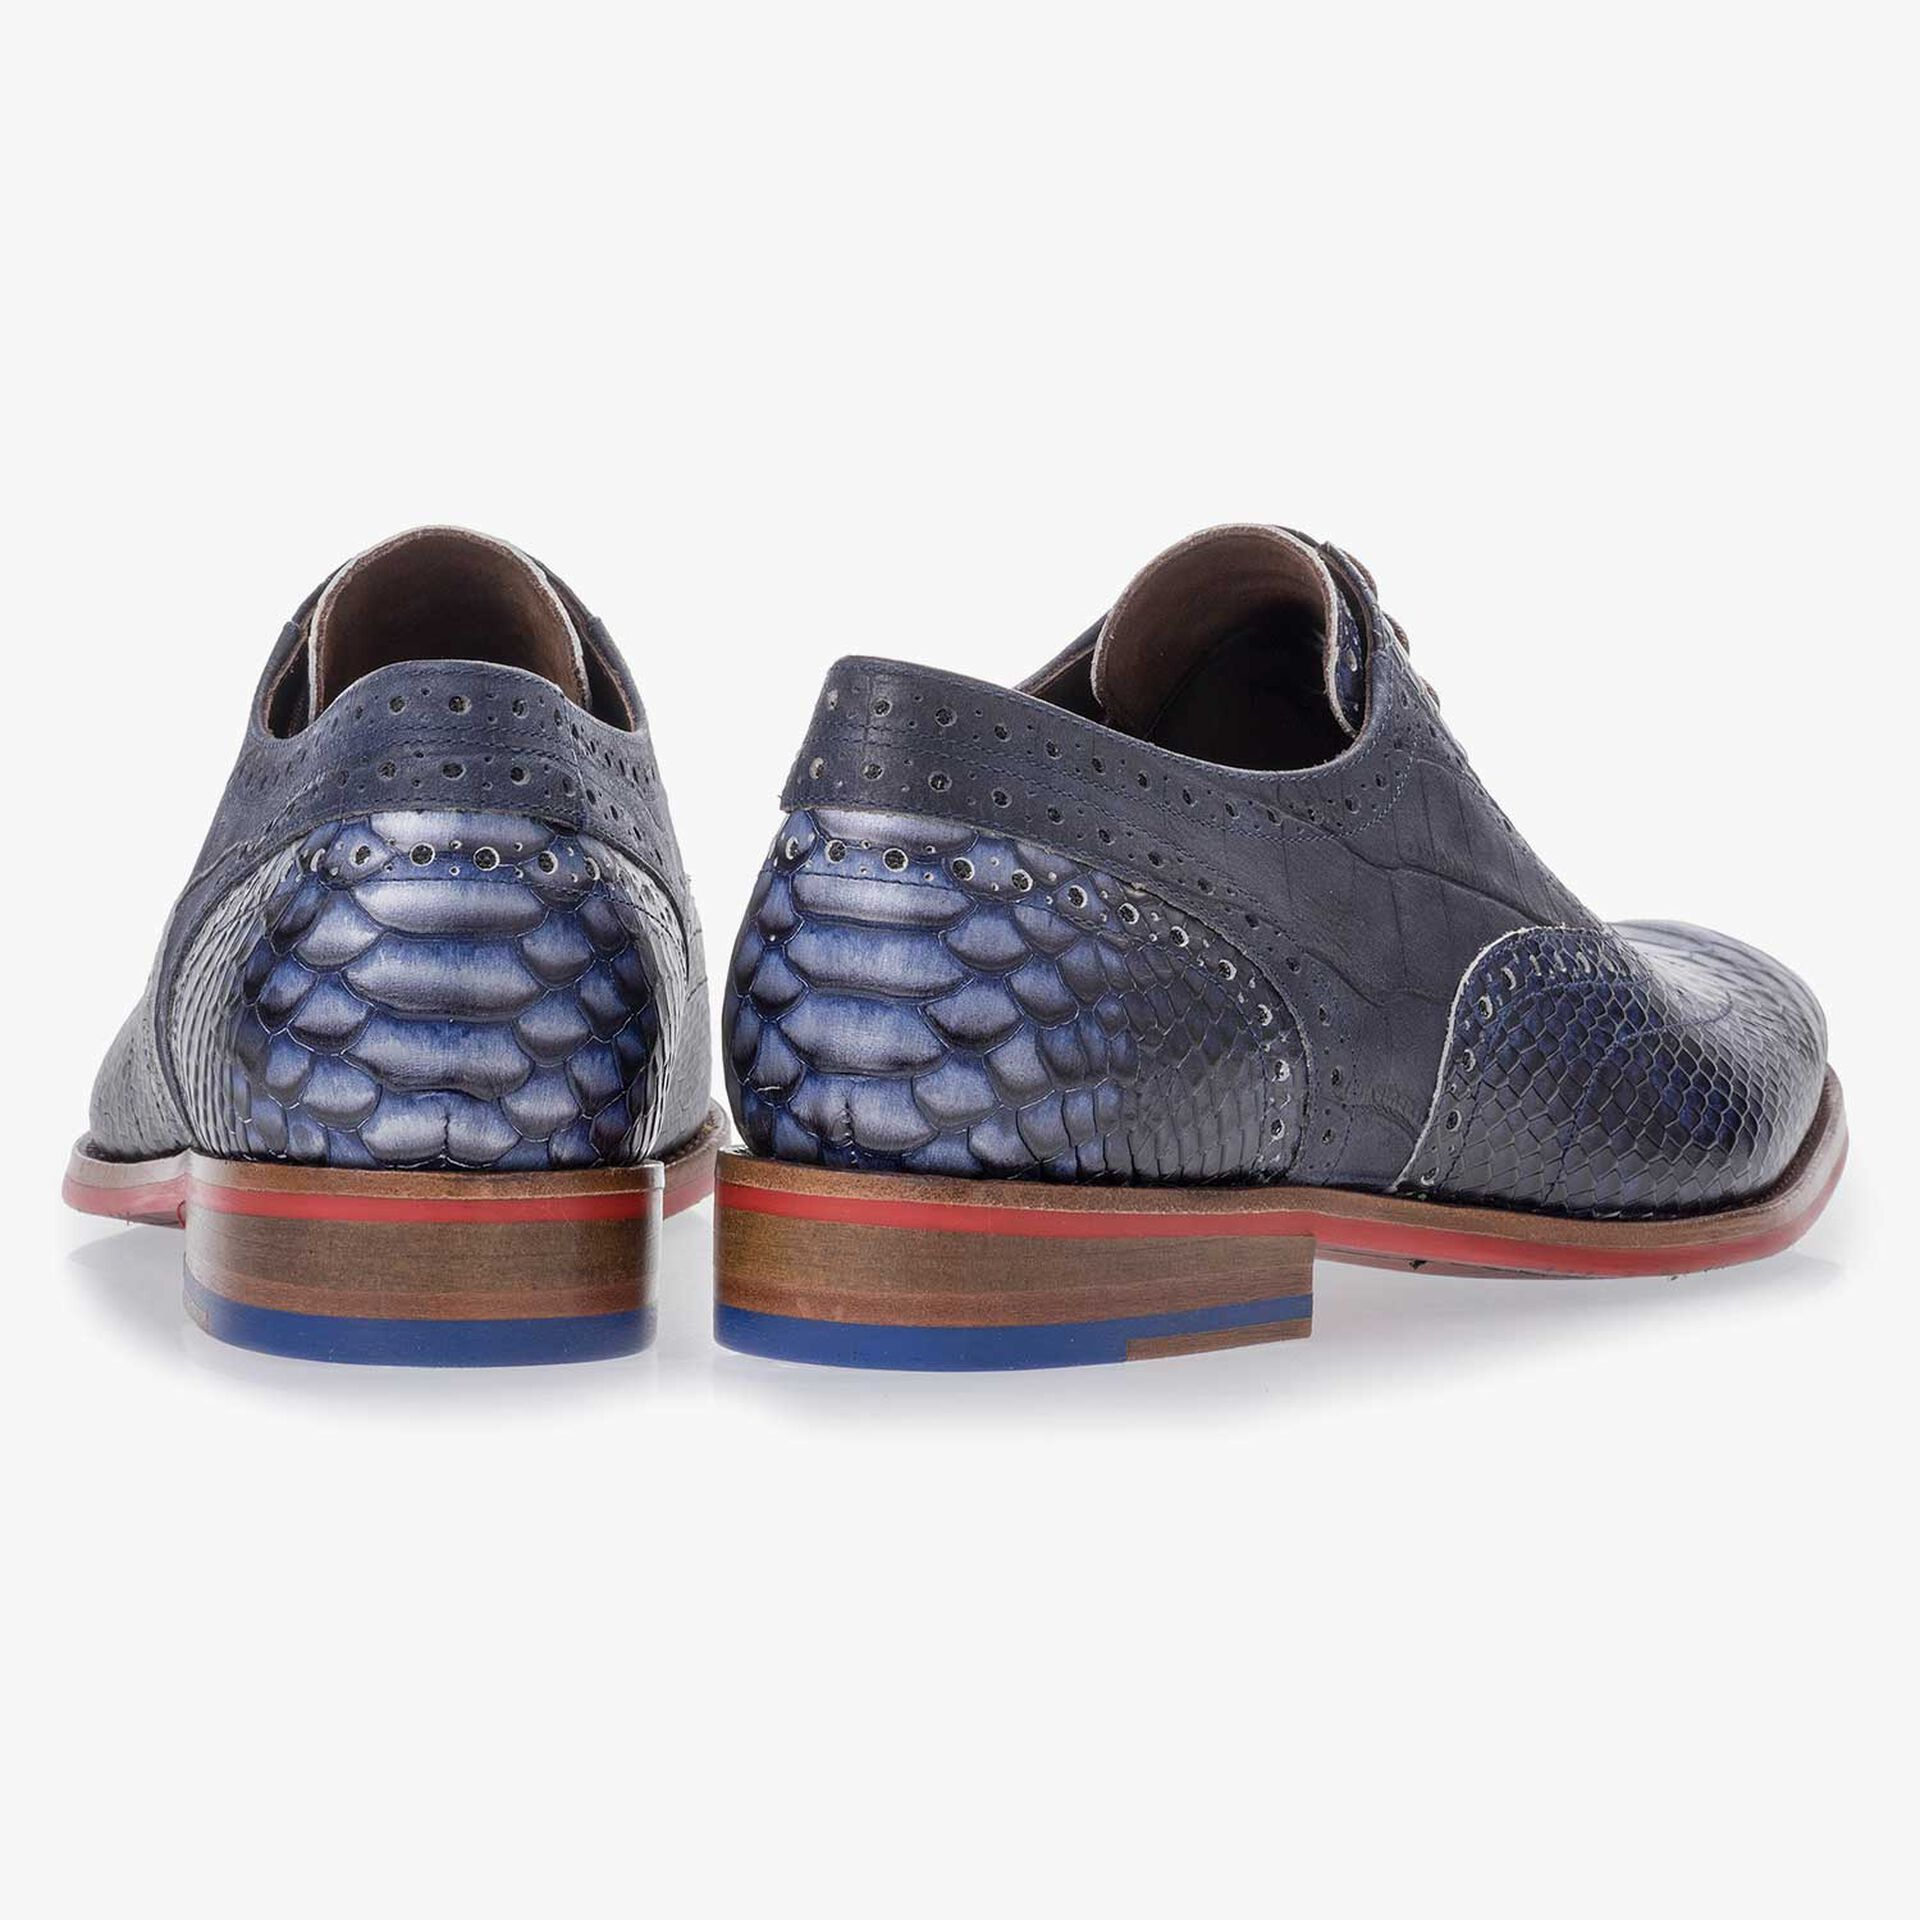 Dark blue leather lace shoe with a snake print